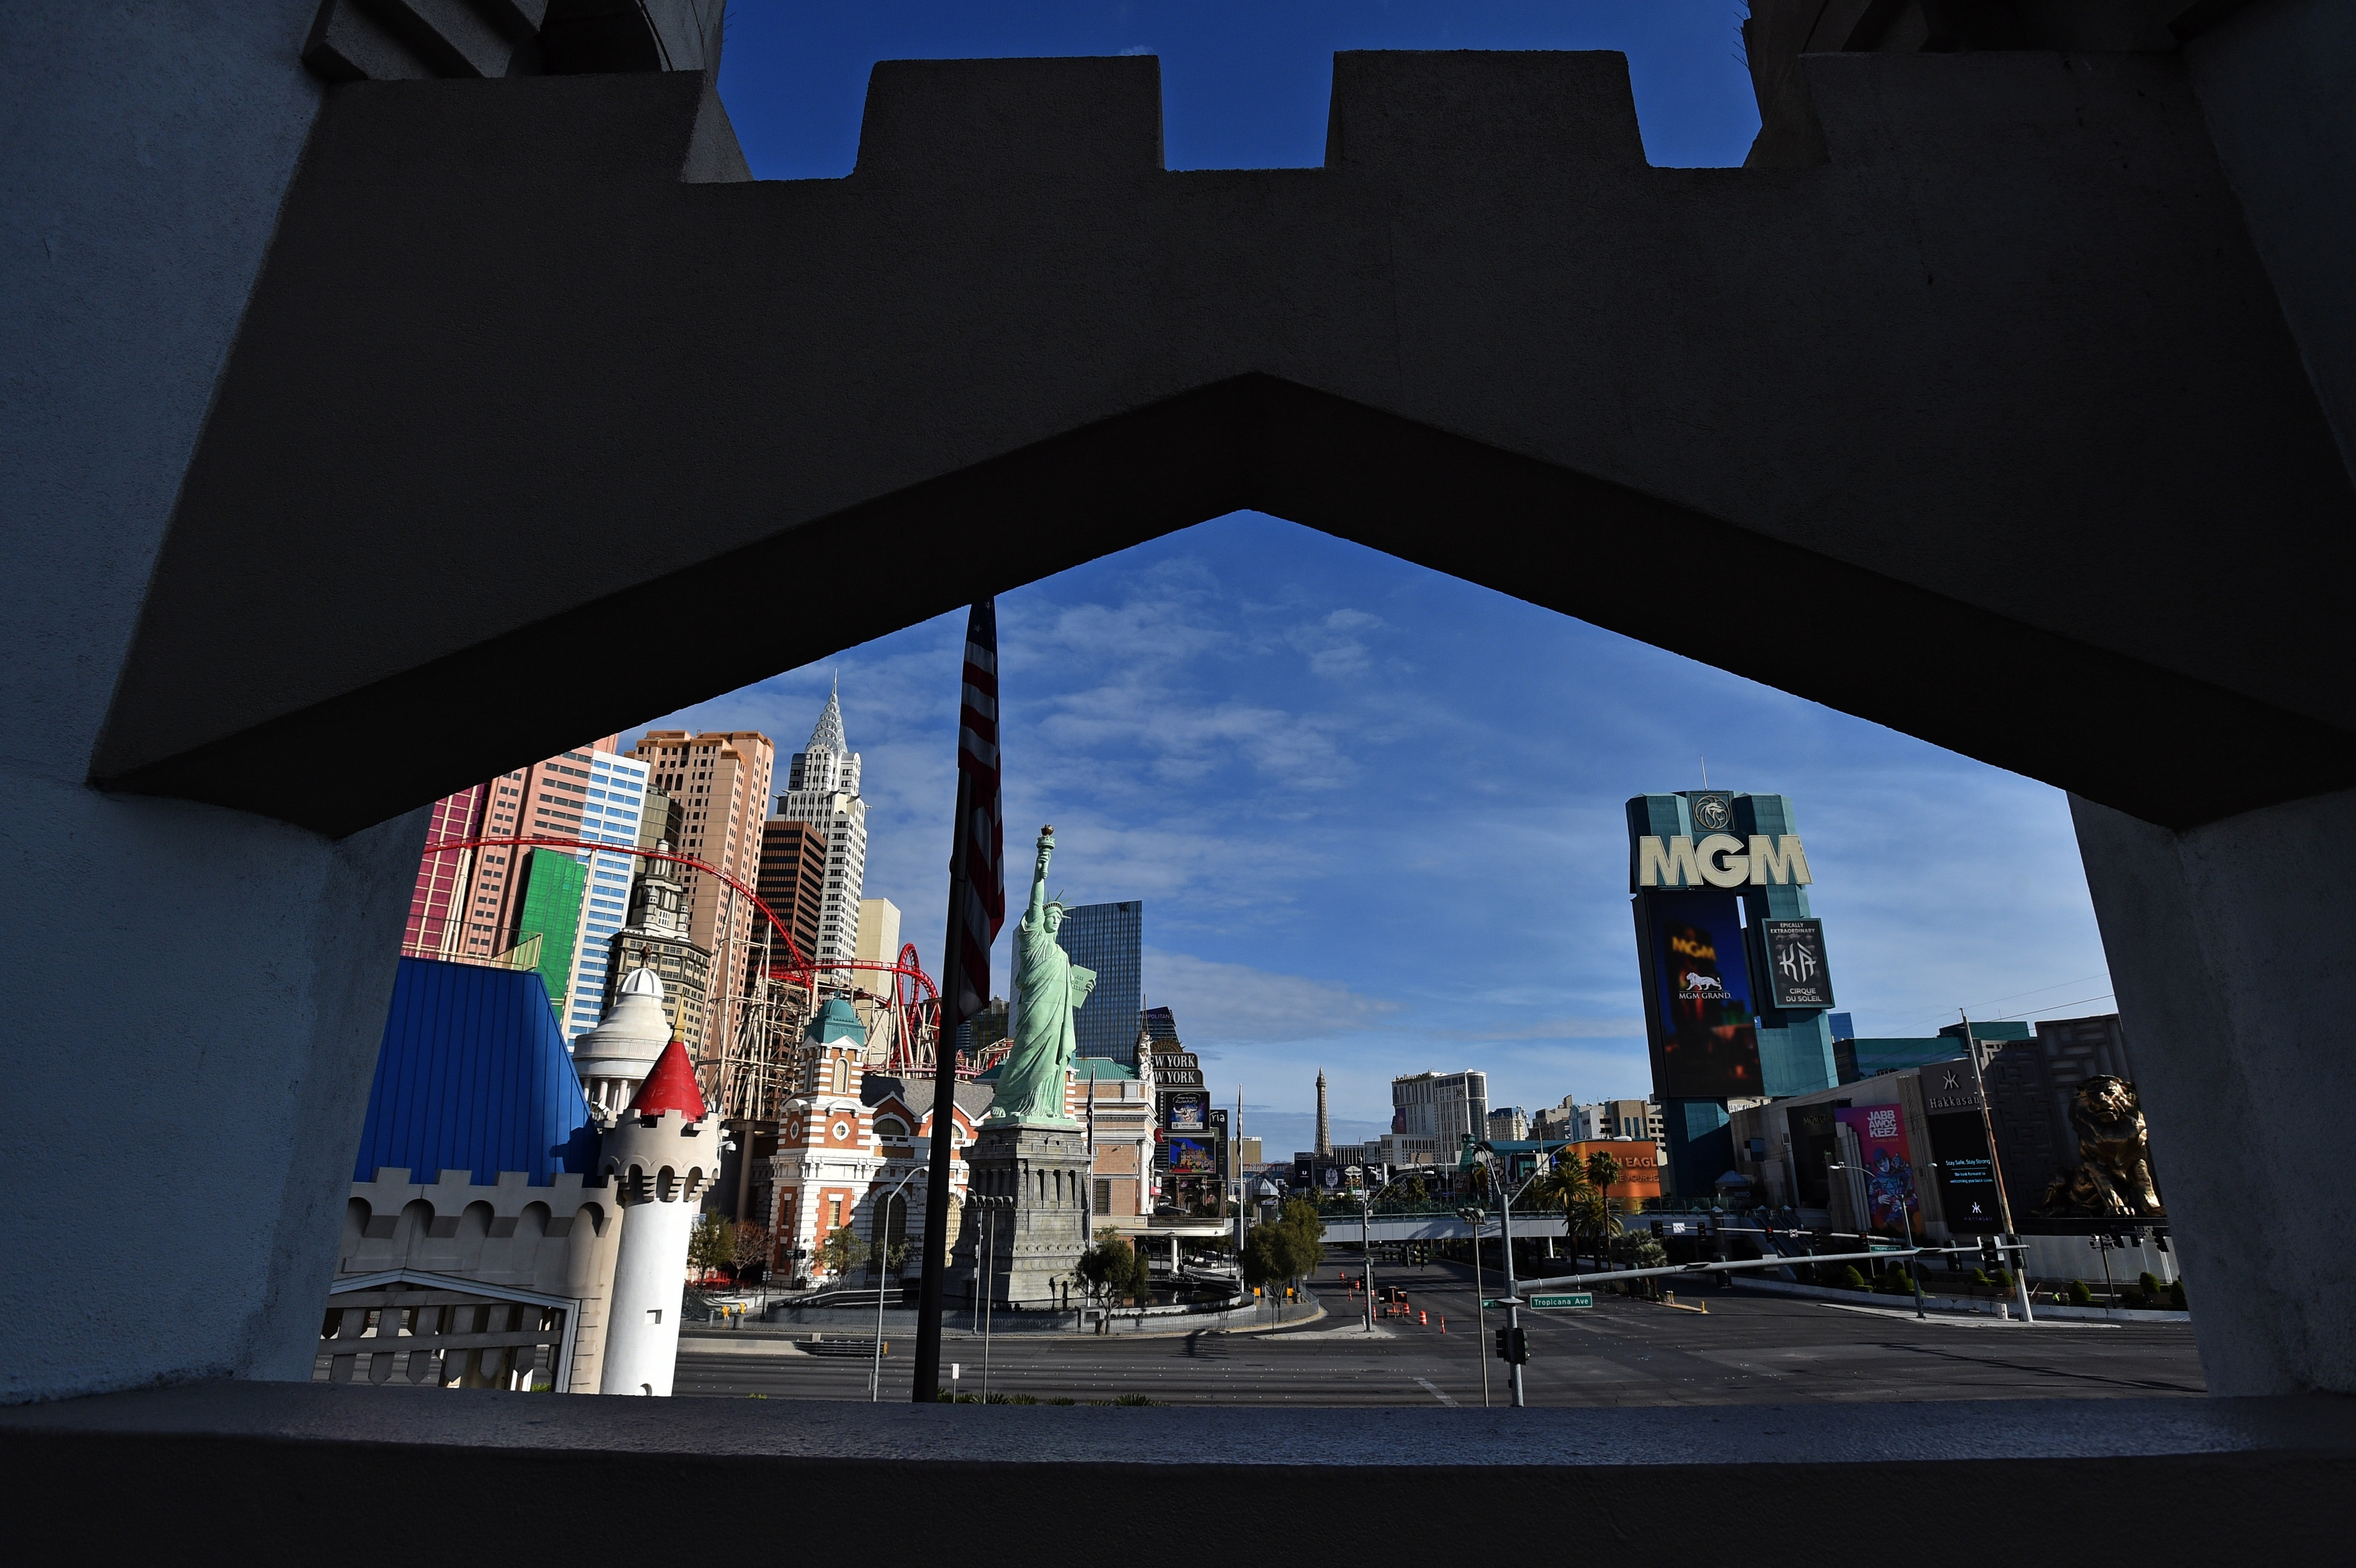 Las Vegas Will Look a Lot Different. Here's What to Expect on Your Next Visit